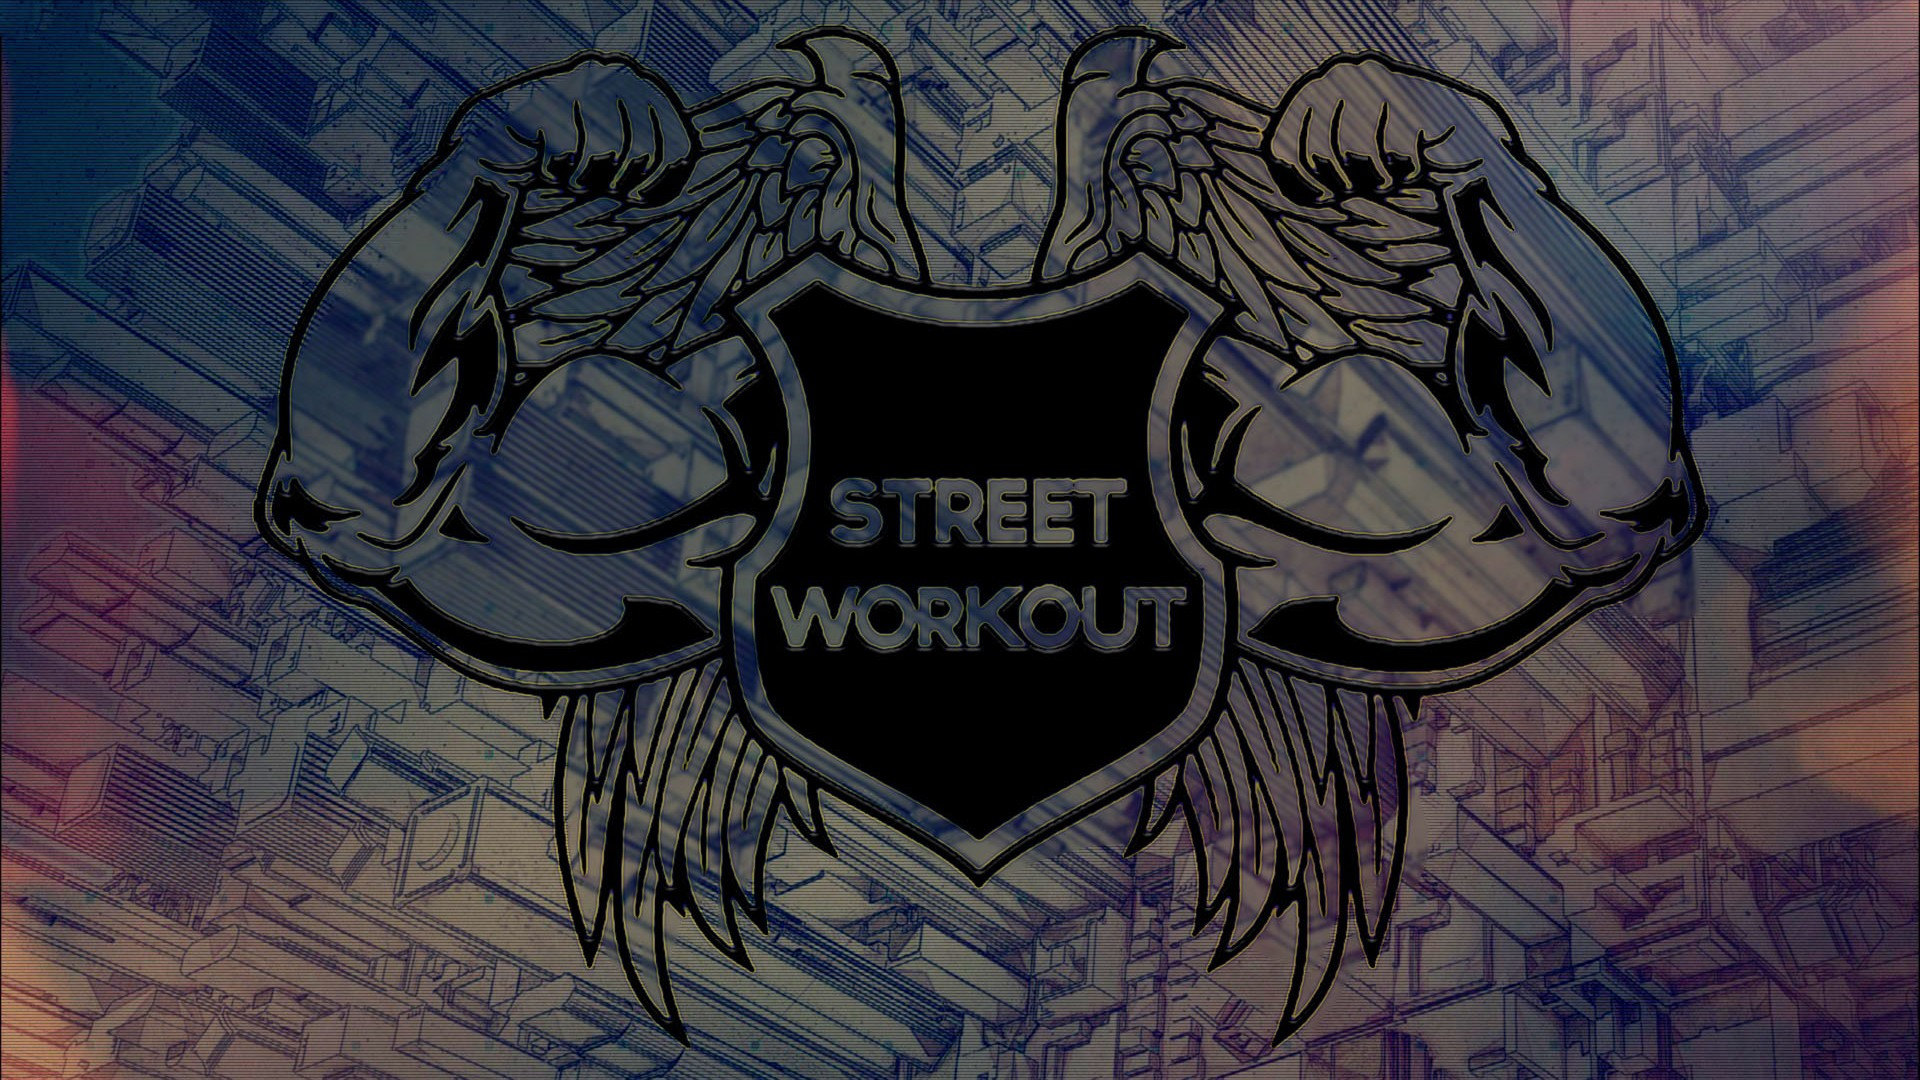 Workout Wallpapers (65+ images) |Street Workout Wallpaper